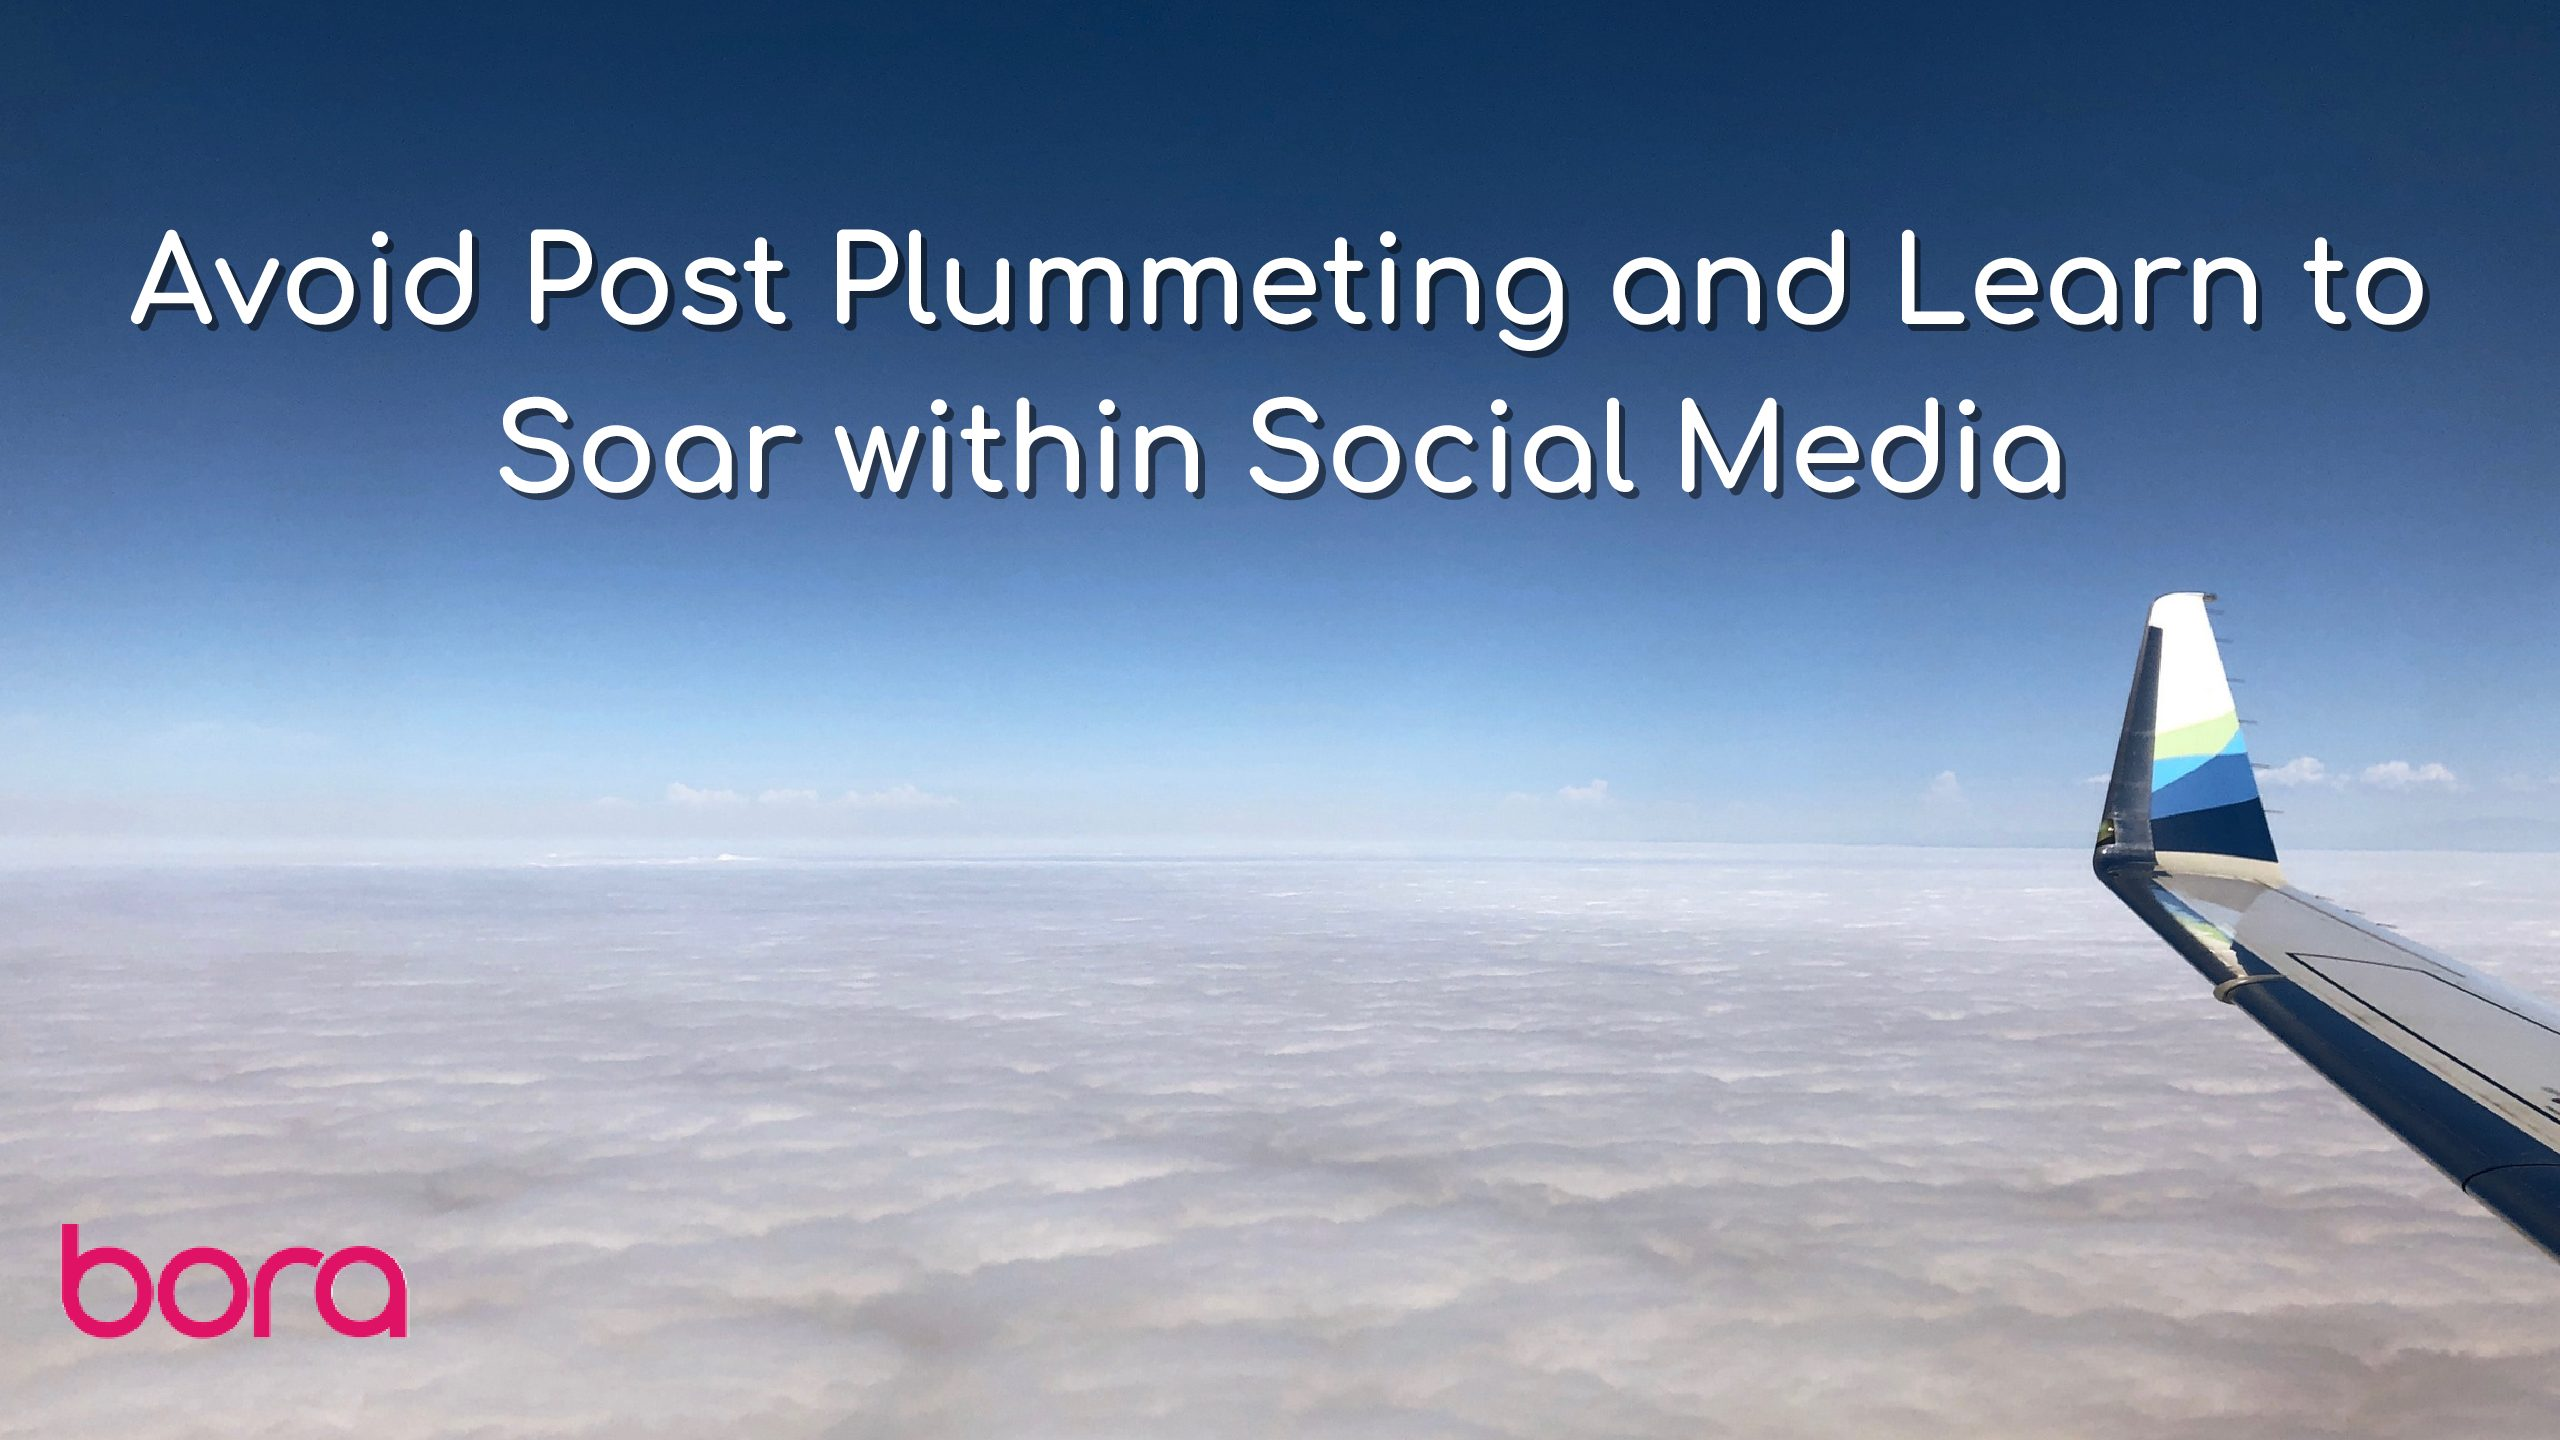 Avoid Post Plummeting and Learn to Soar within Social Media